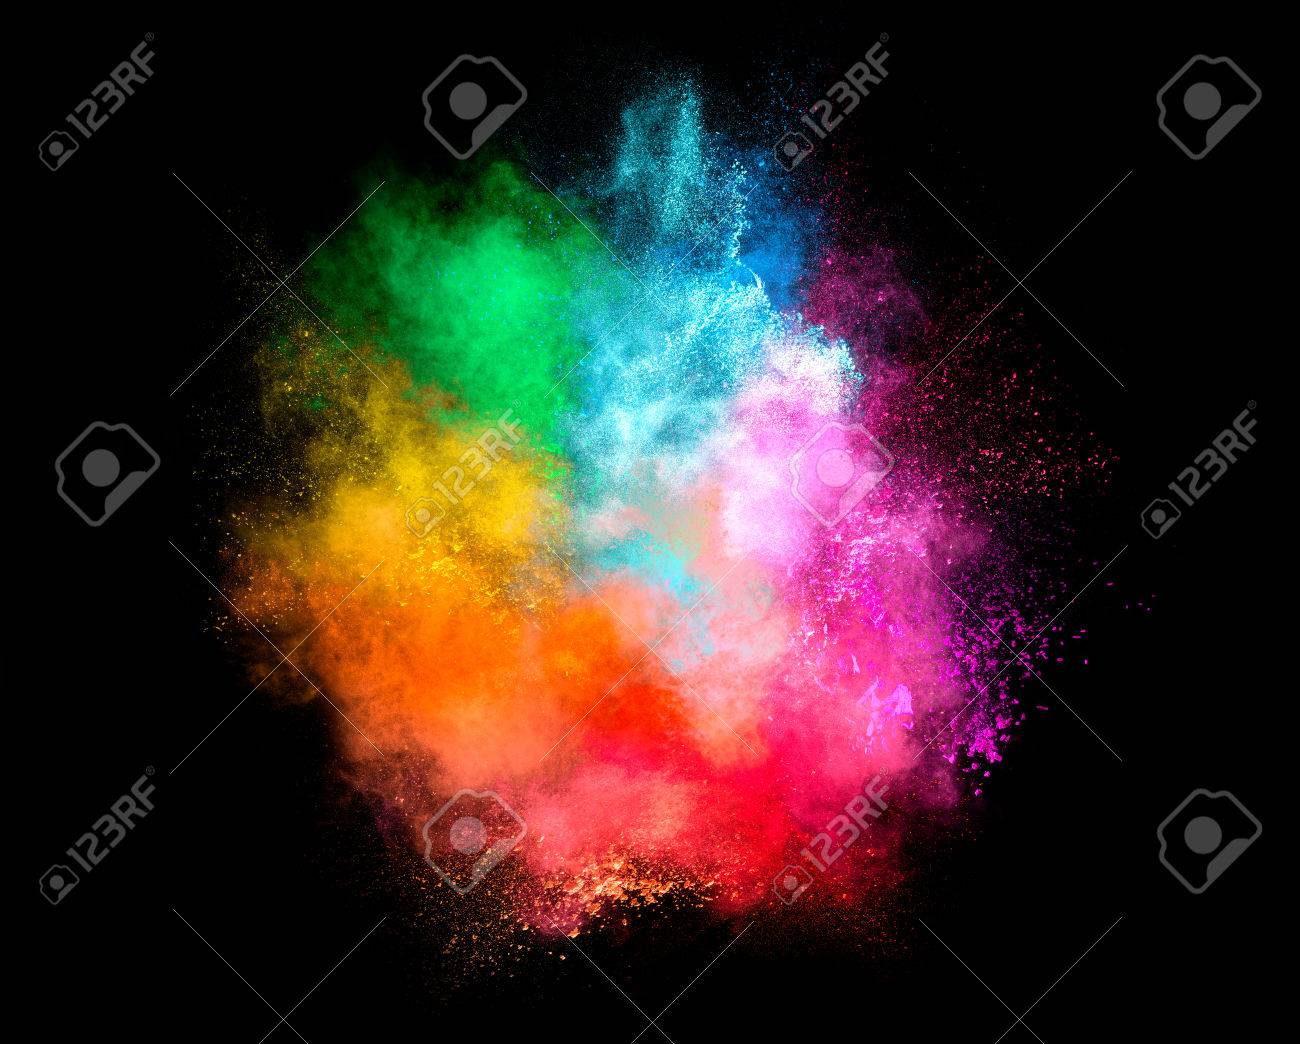 Colorful dust particle explosion resembling a pyrotechnic effect over black background. Closeup of a color explosion isolated on black - 55314678